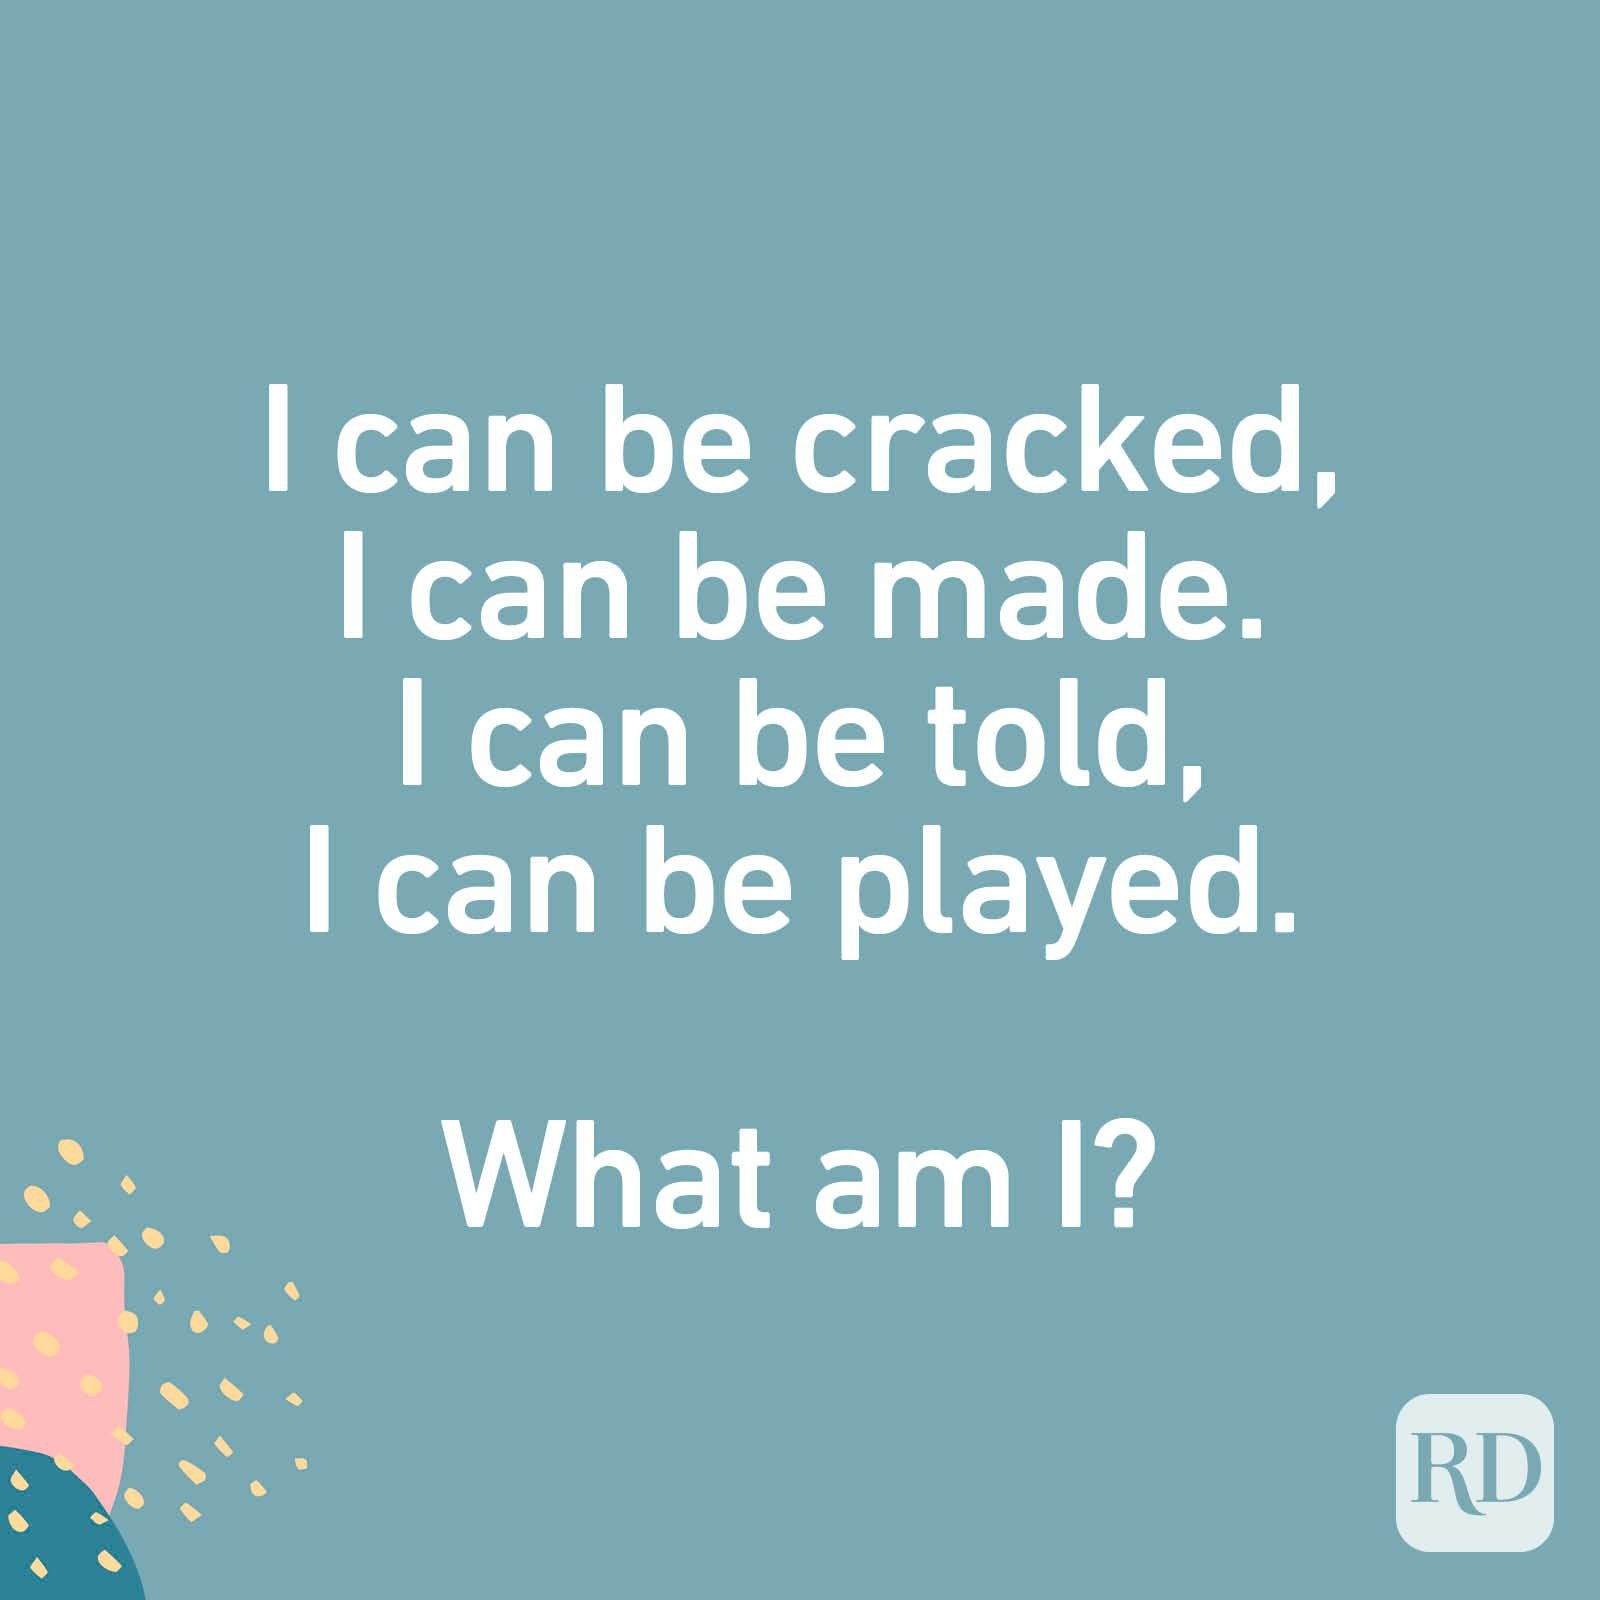 I can be cracked, I can be made. I can be told, I can be played. What am I?